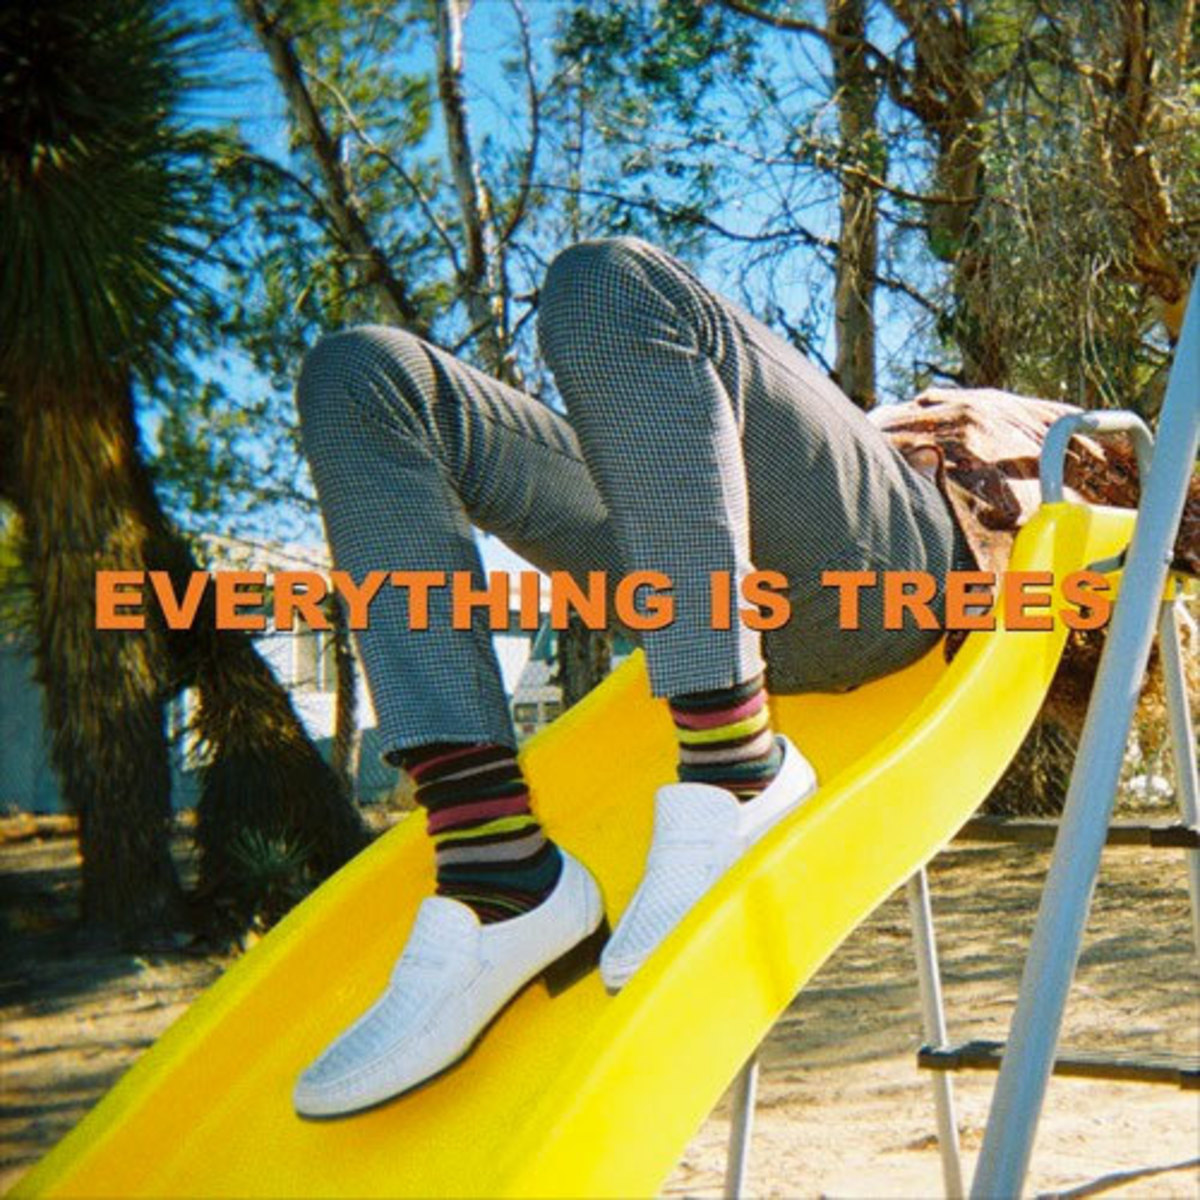 wes-period-everything-is-trees.jpg